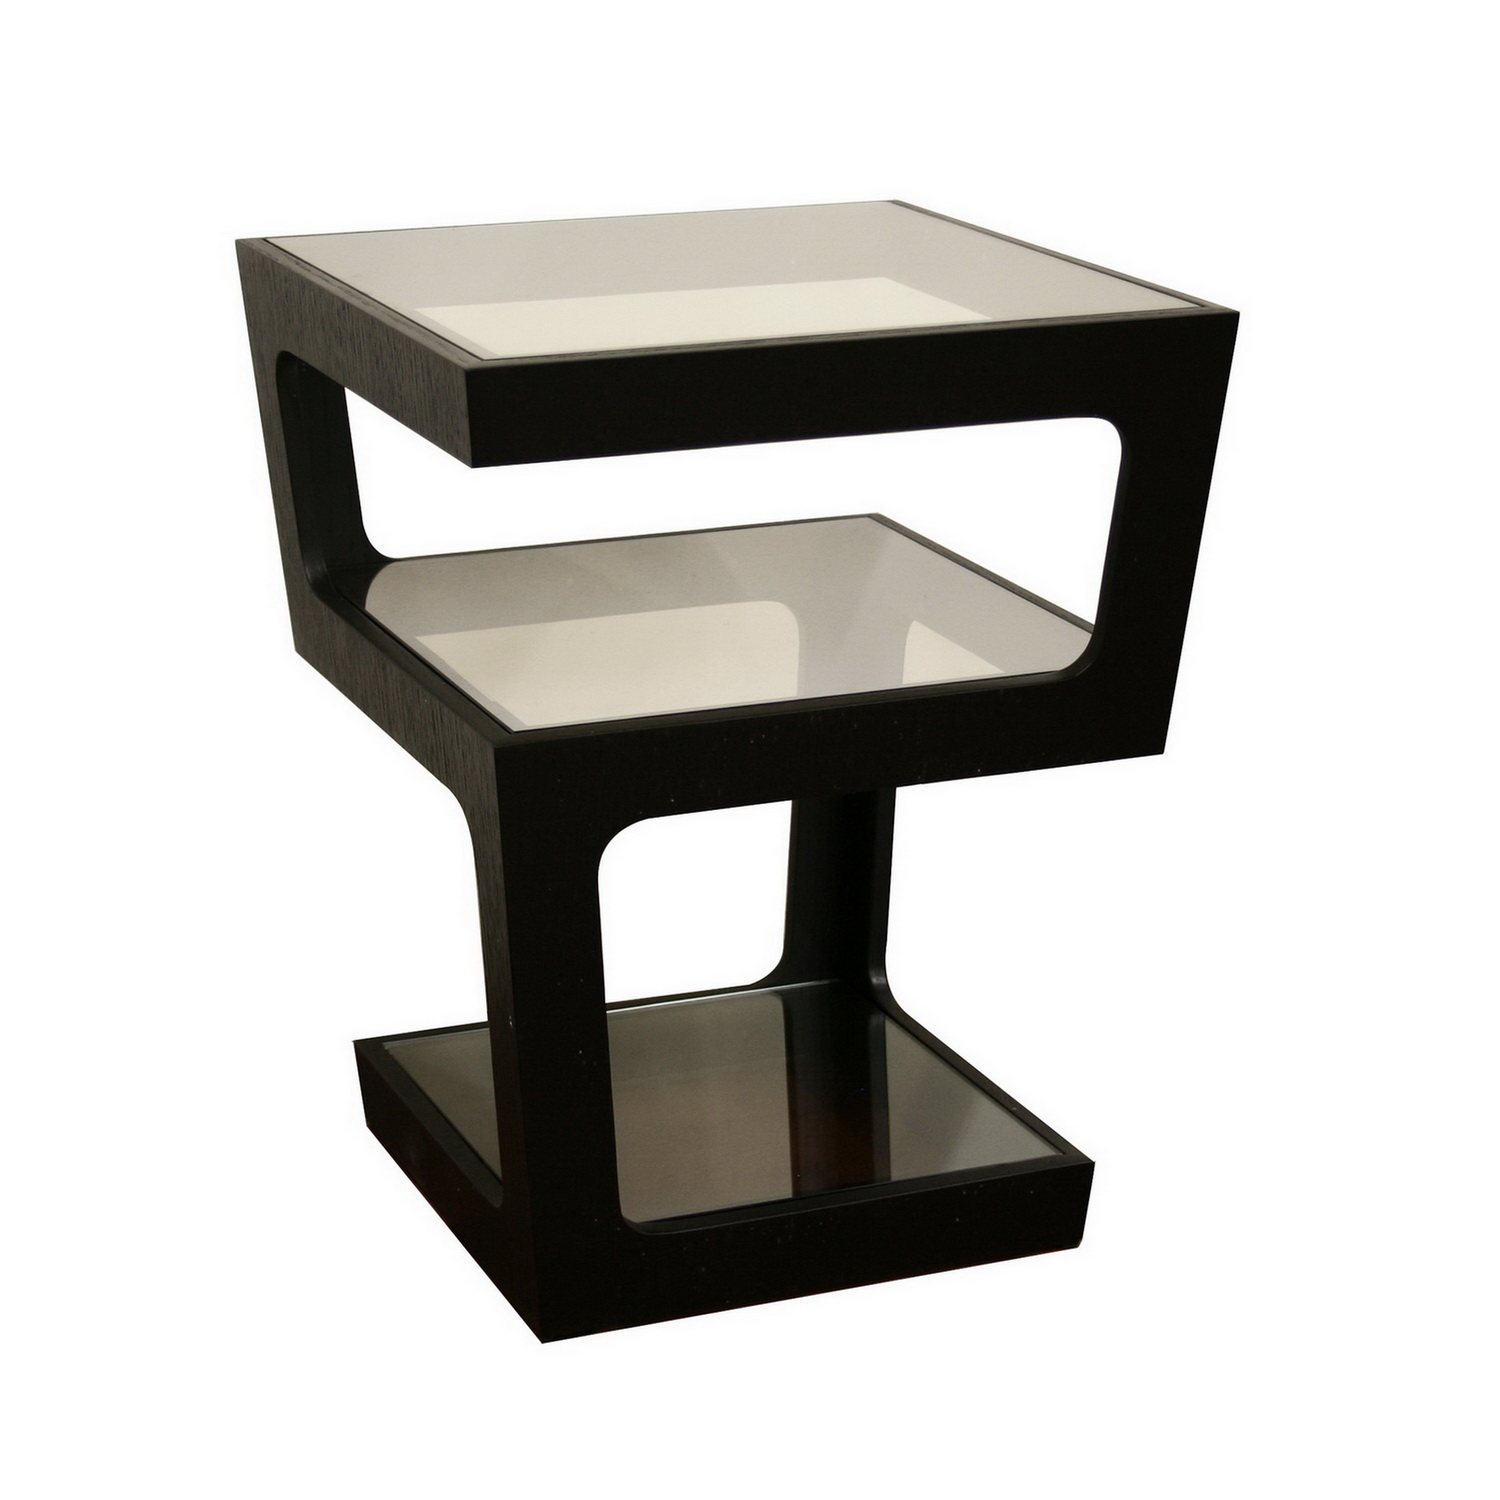 table modern small side tables. Black Bedroom Furniture Sets. Home Design Ideas